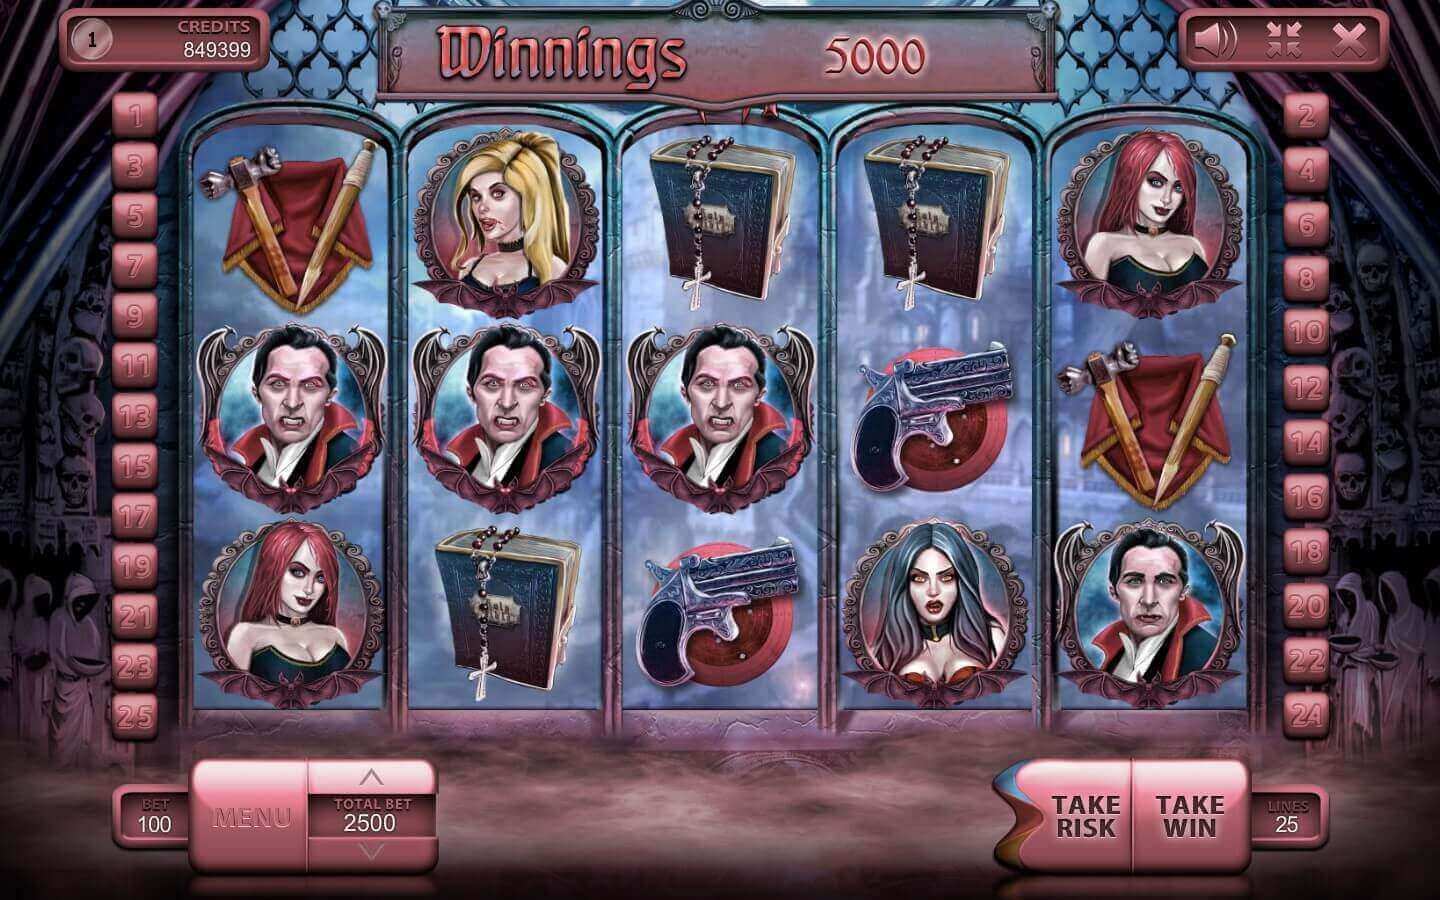 The Vampires slot machine free